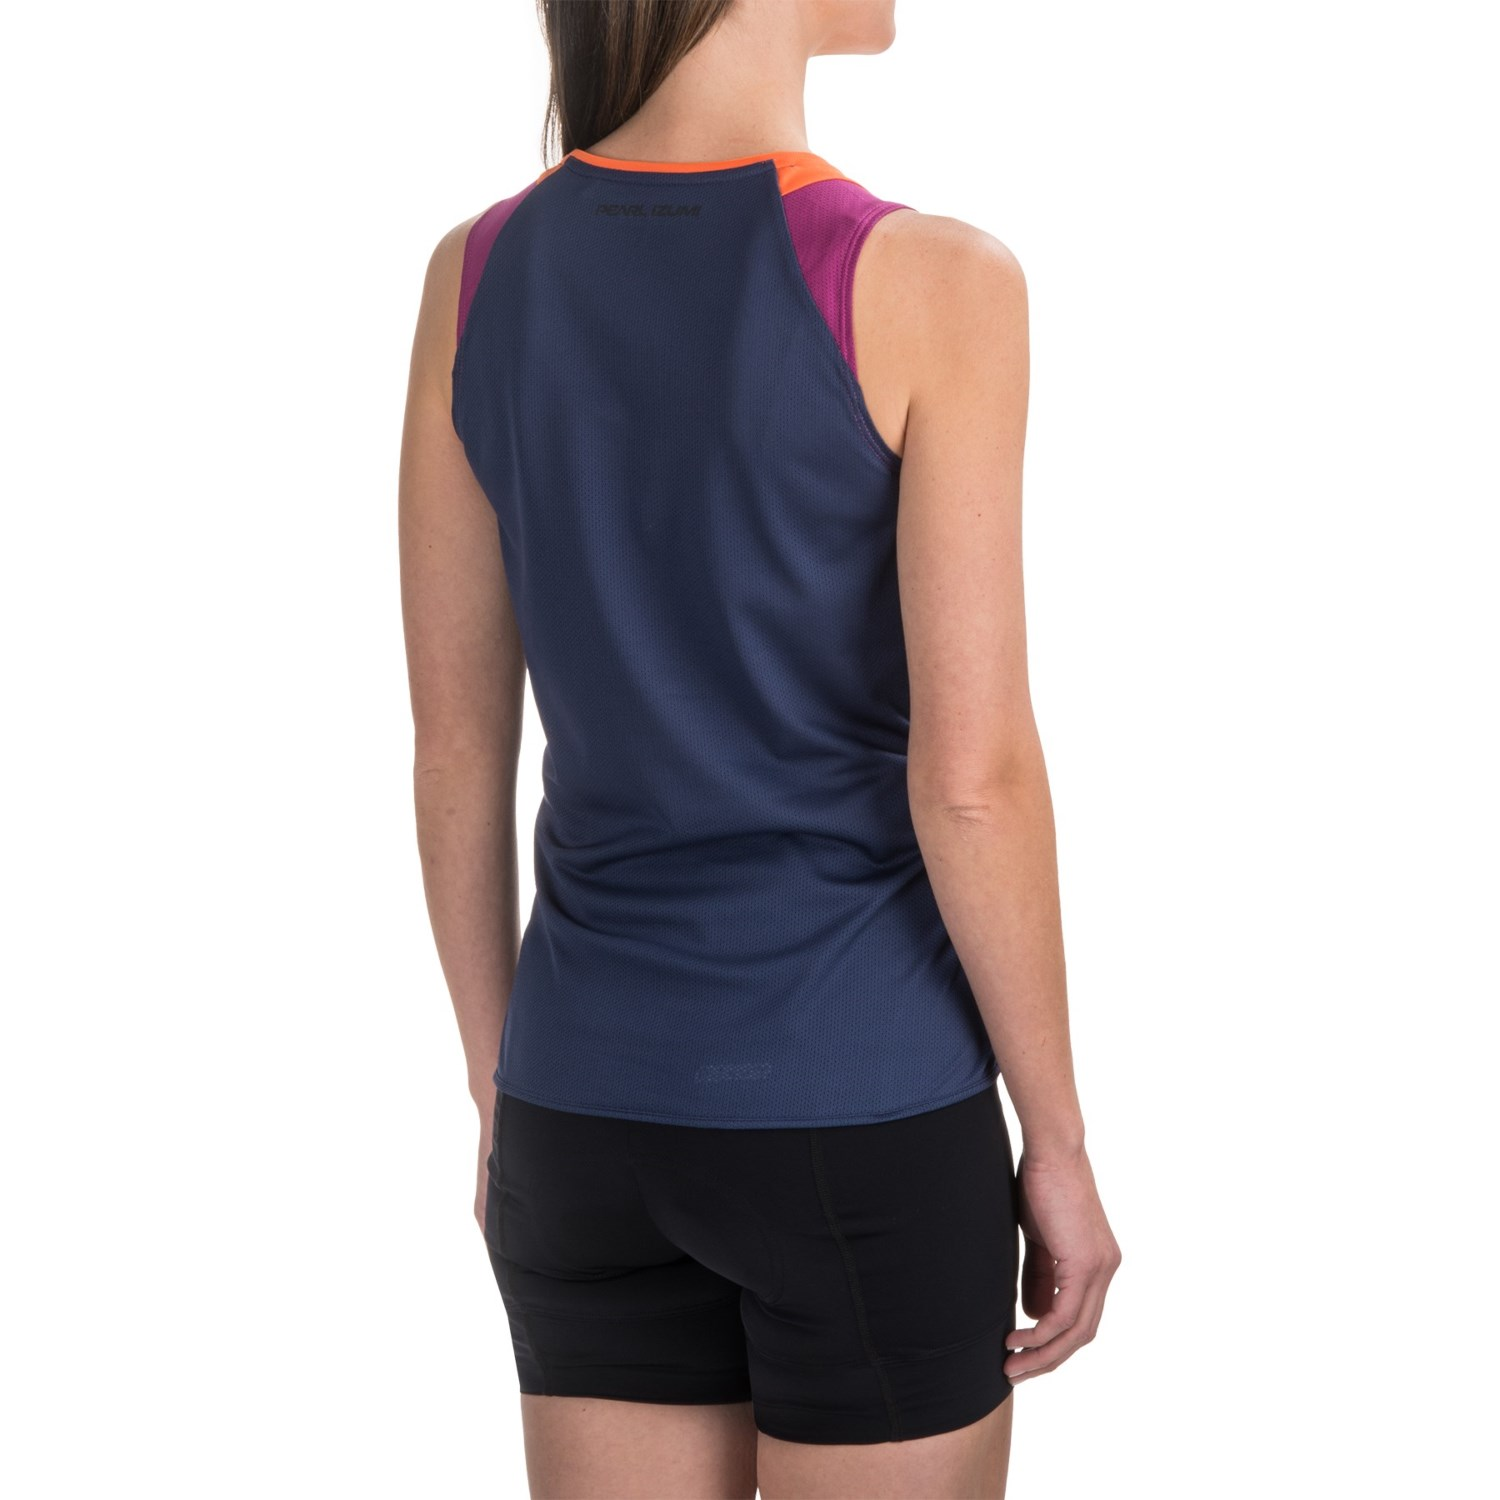 Pearl izumi launch cycling jersey for women save 50 for Pearl izumi cycling shirt